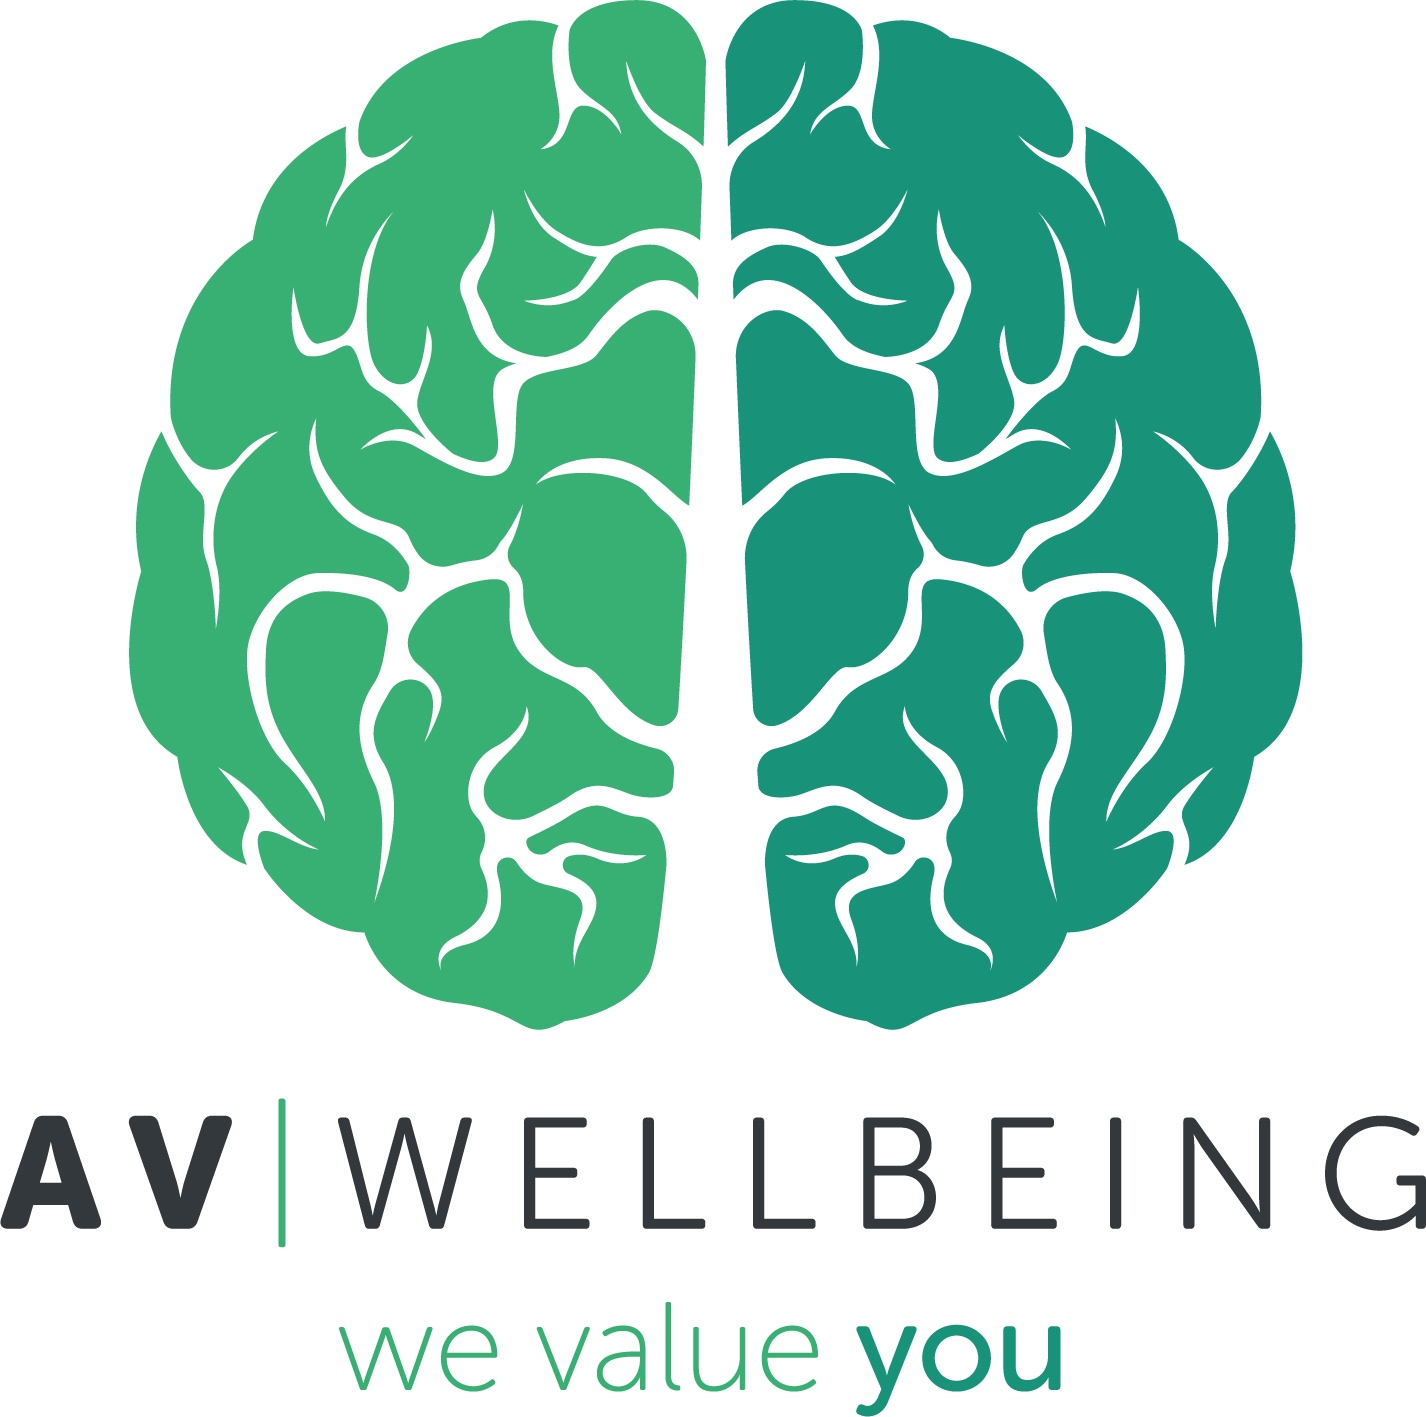 AV Wellbeing LTD